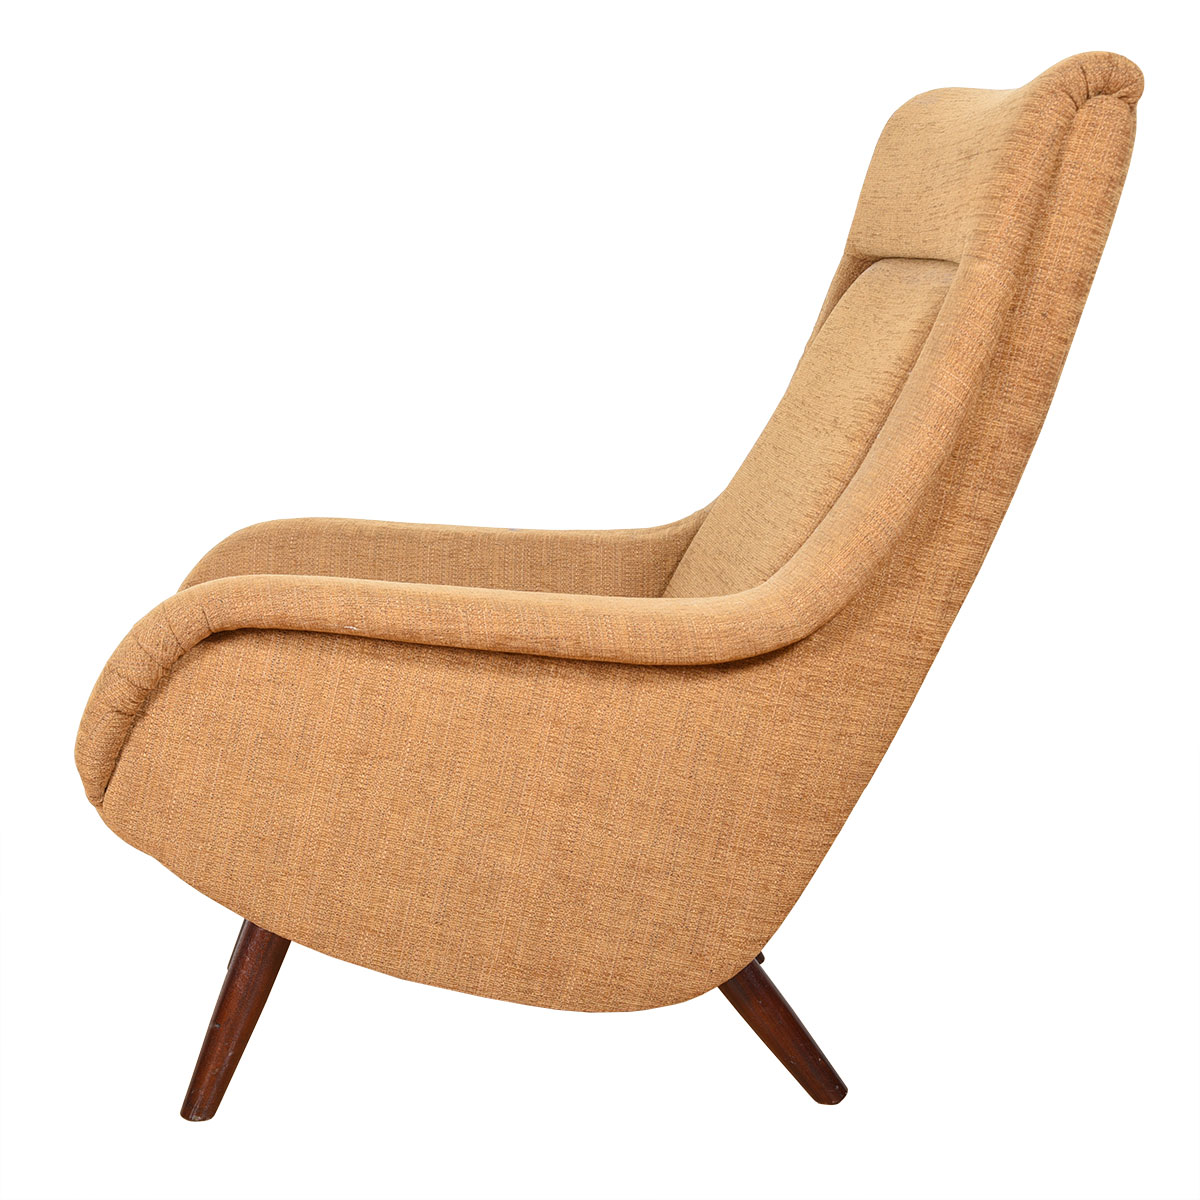 The Stockholm Easy Chair by Bengt Ruda